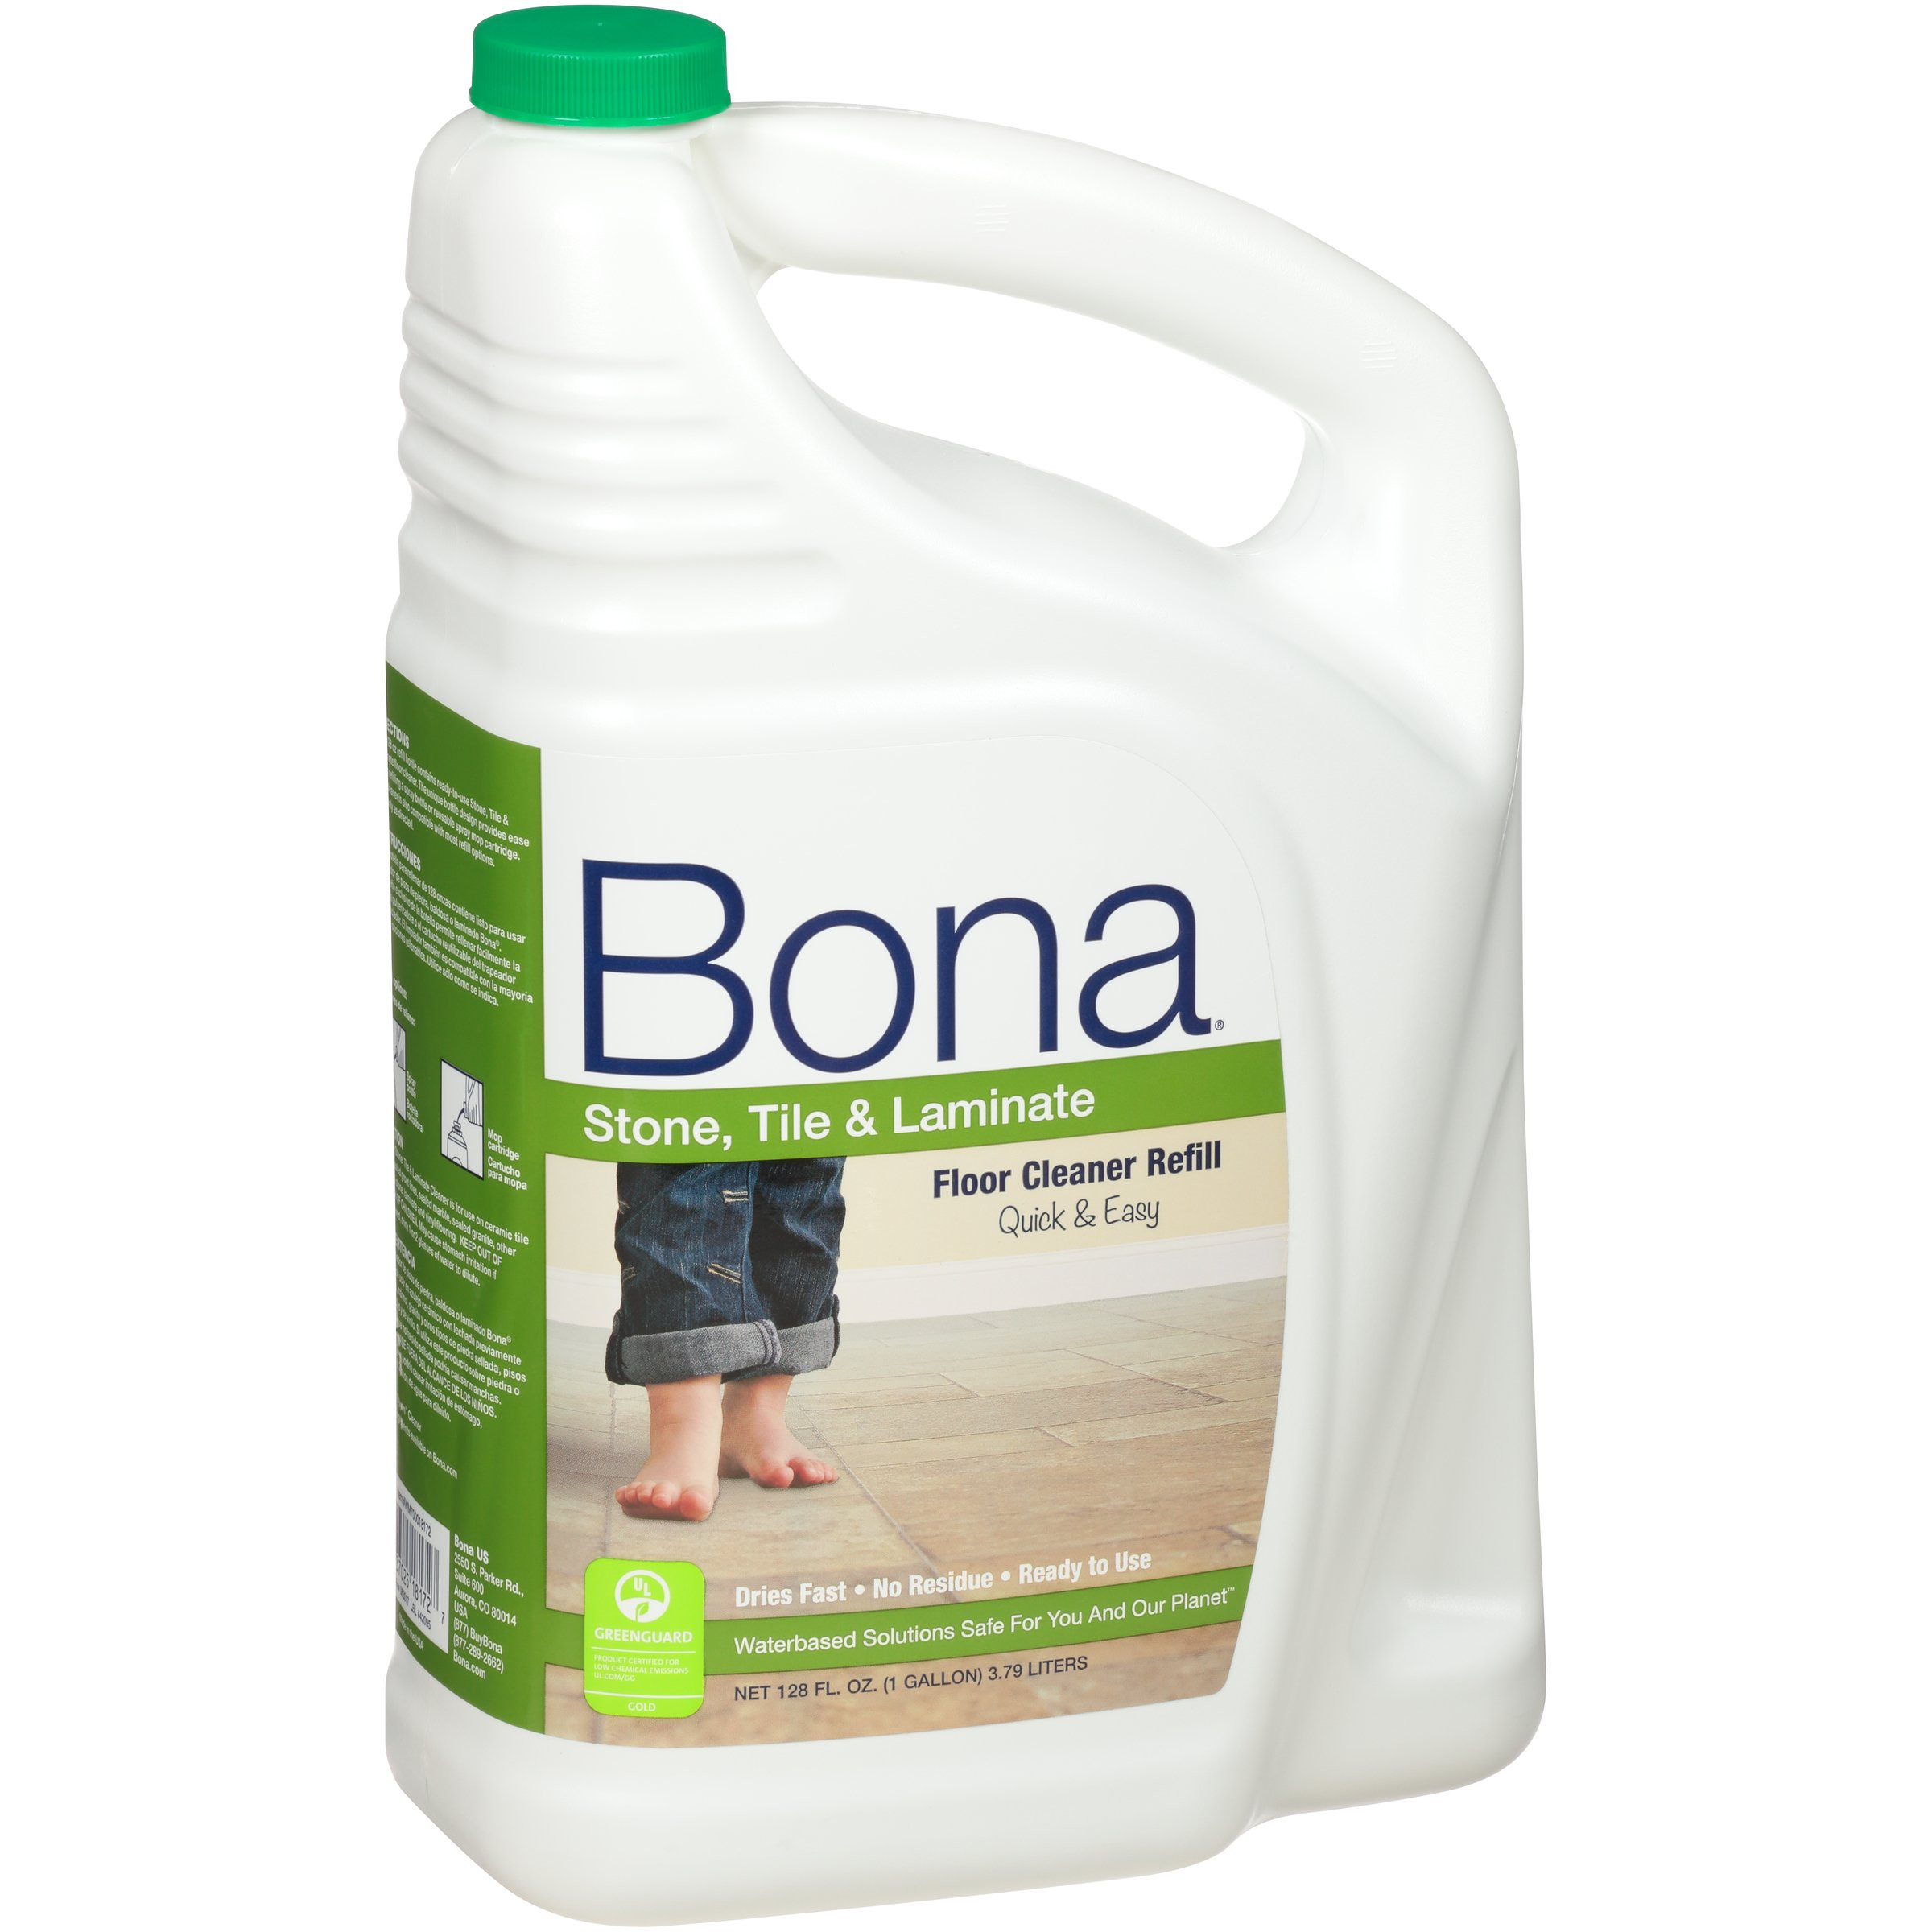 Bona Pro Series Hardwood Floor Care System Of Amazon Com Bona Wm700018182 Free Simple Hardwood Floor Cleaner Intended for Bonaa Stone Tile Laminate Floor Cleaner Refill 128oz Pack May Vary